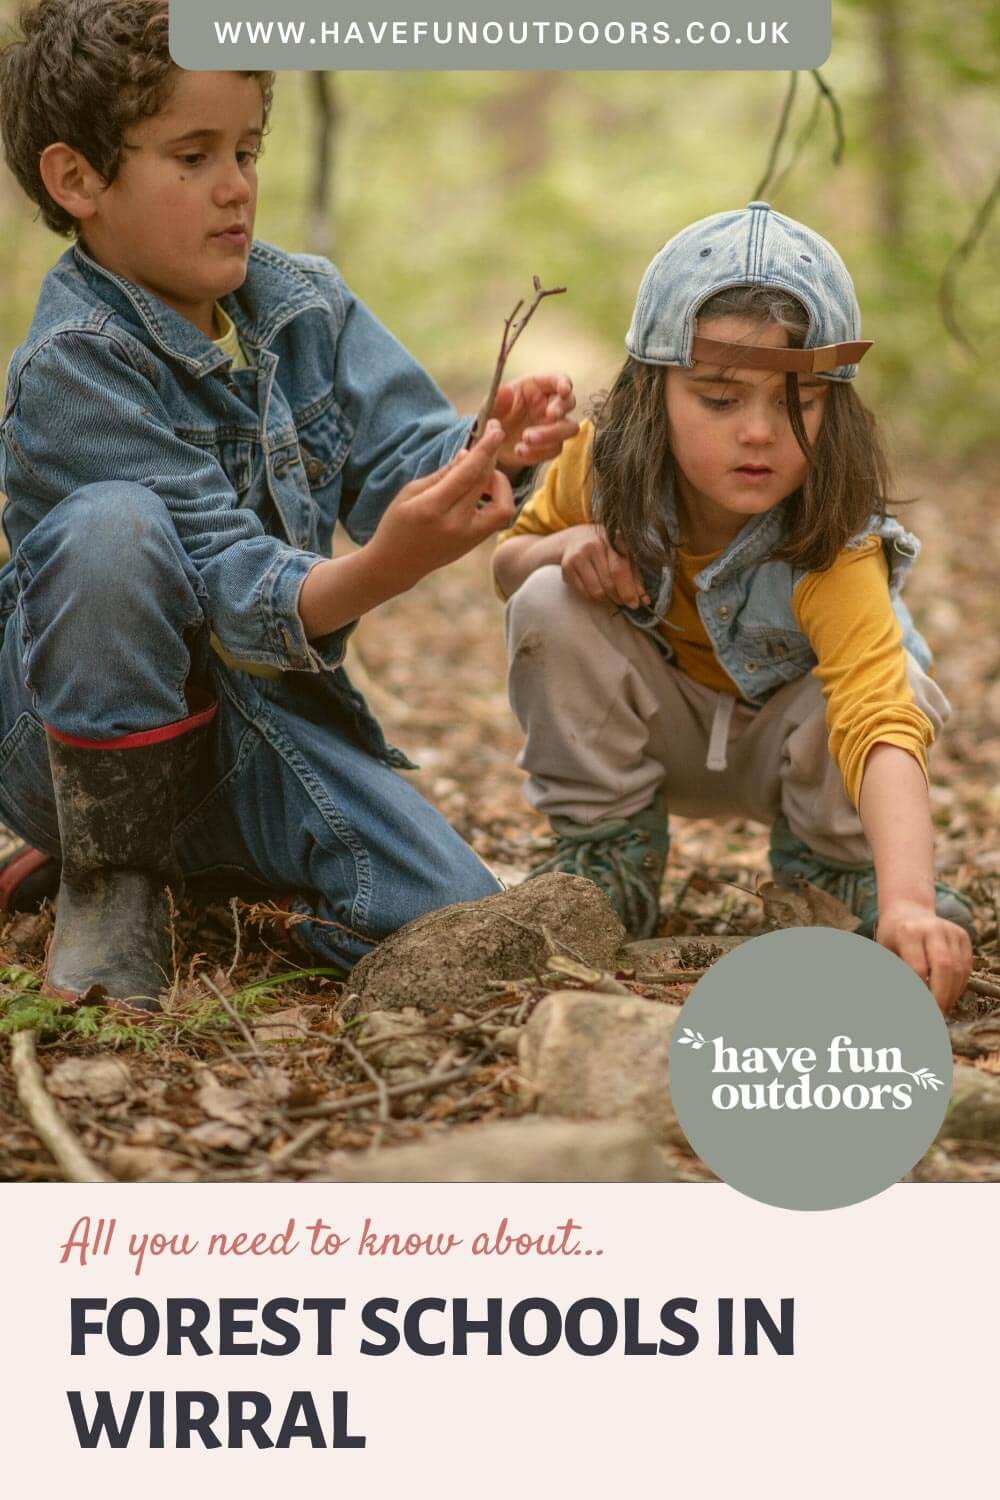 Wirral Forest Schools, Where To Do Forest Schools In Wirral